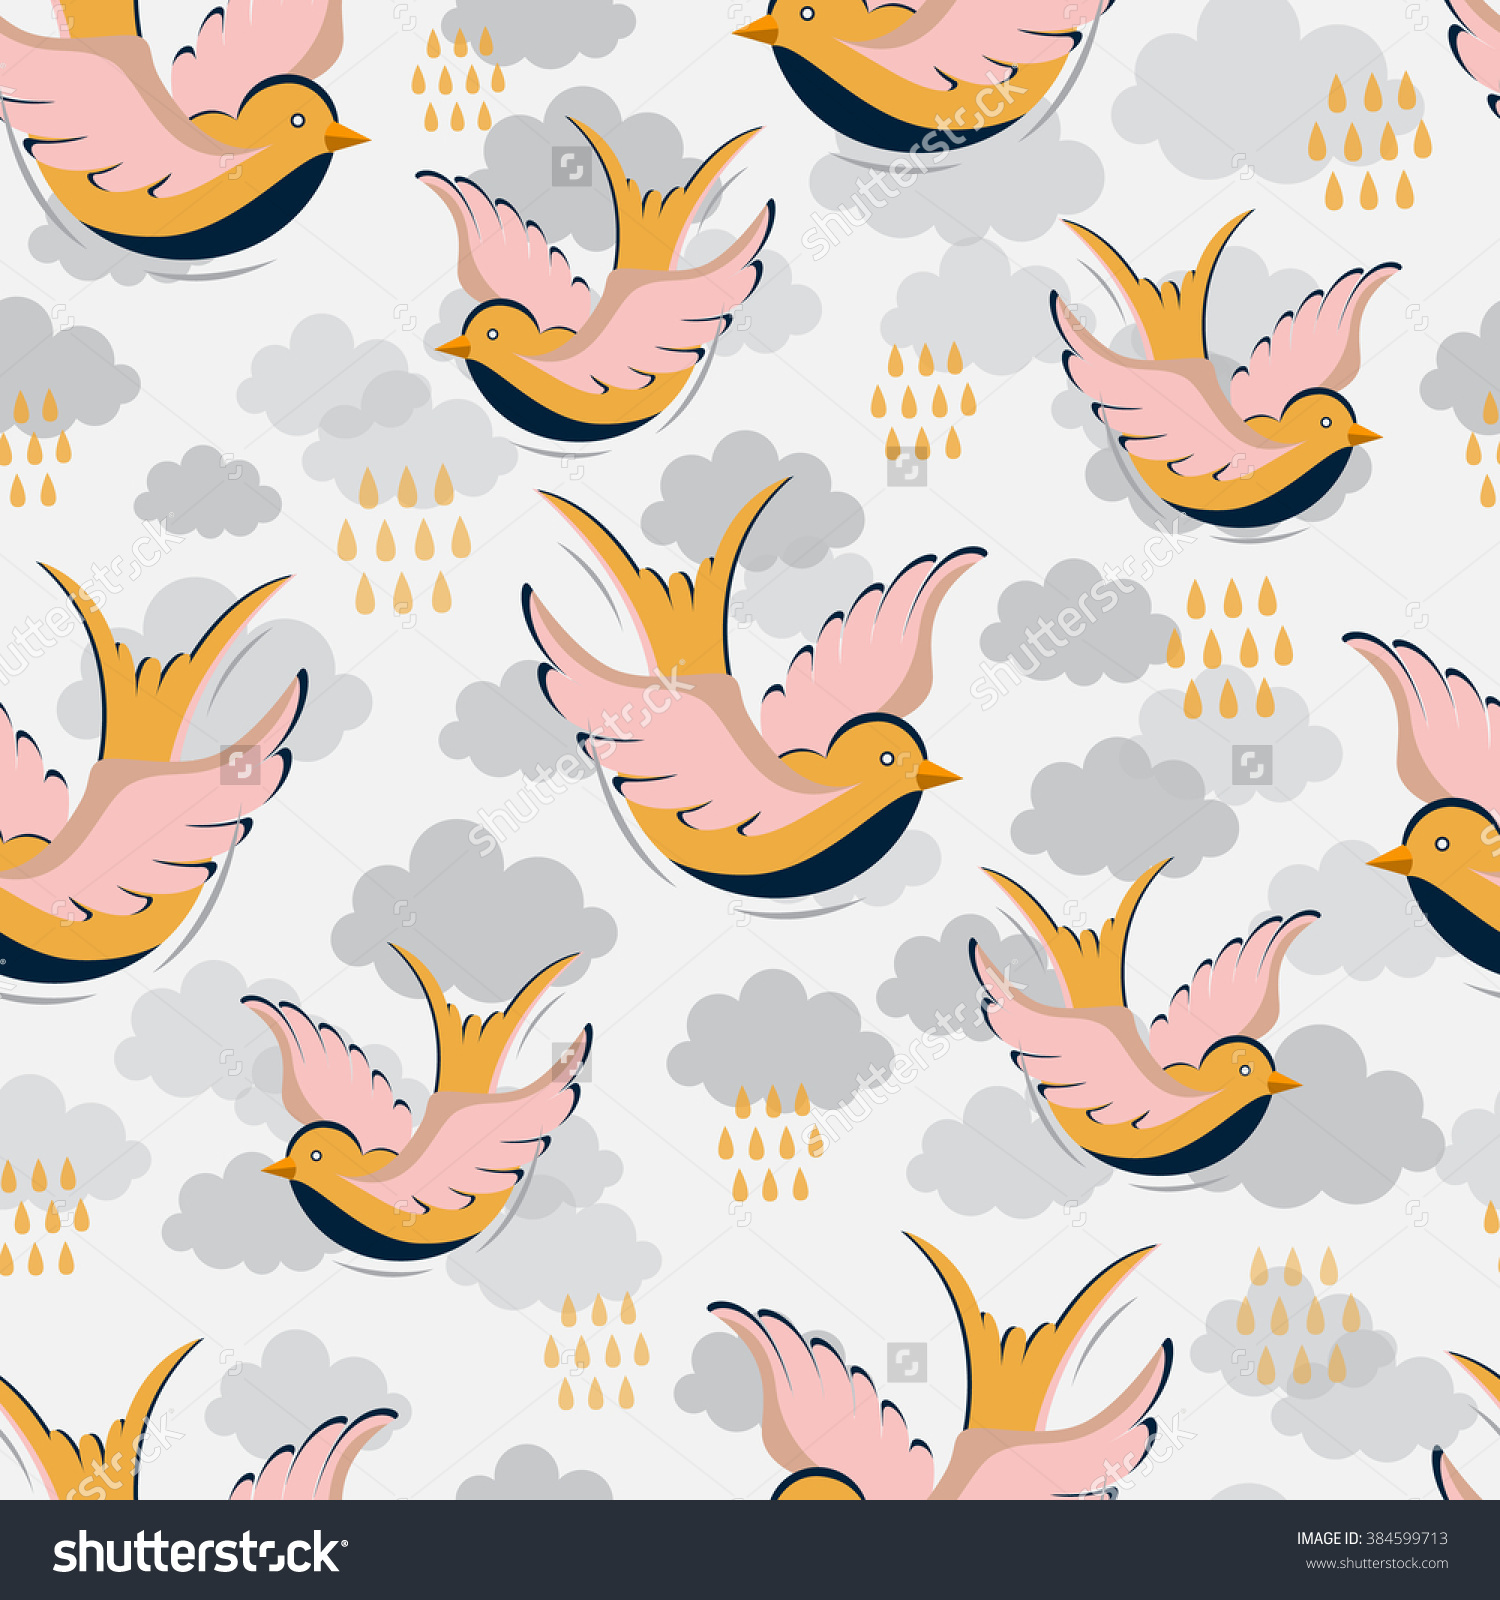 Vector Seamless Pattern With Swallow, Clouds And Rain Drops.